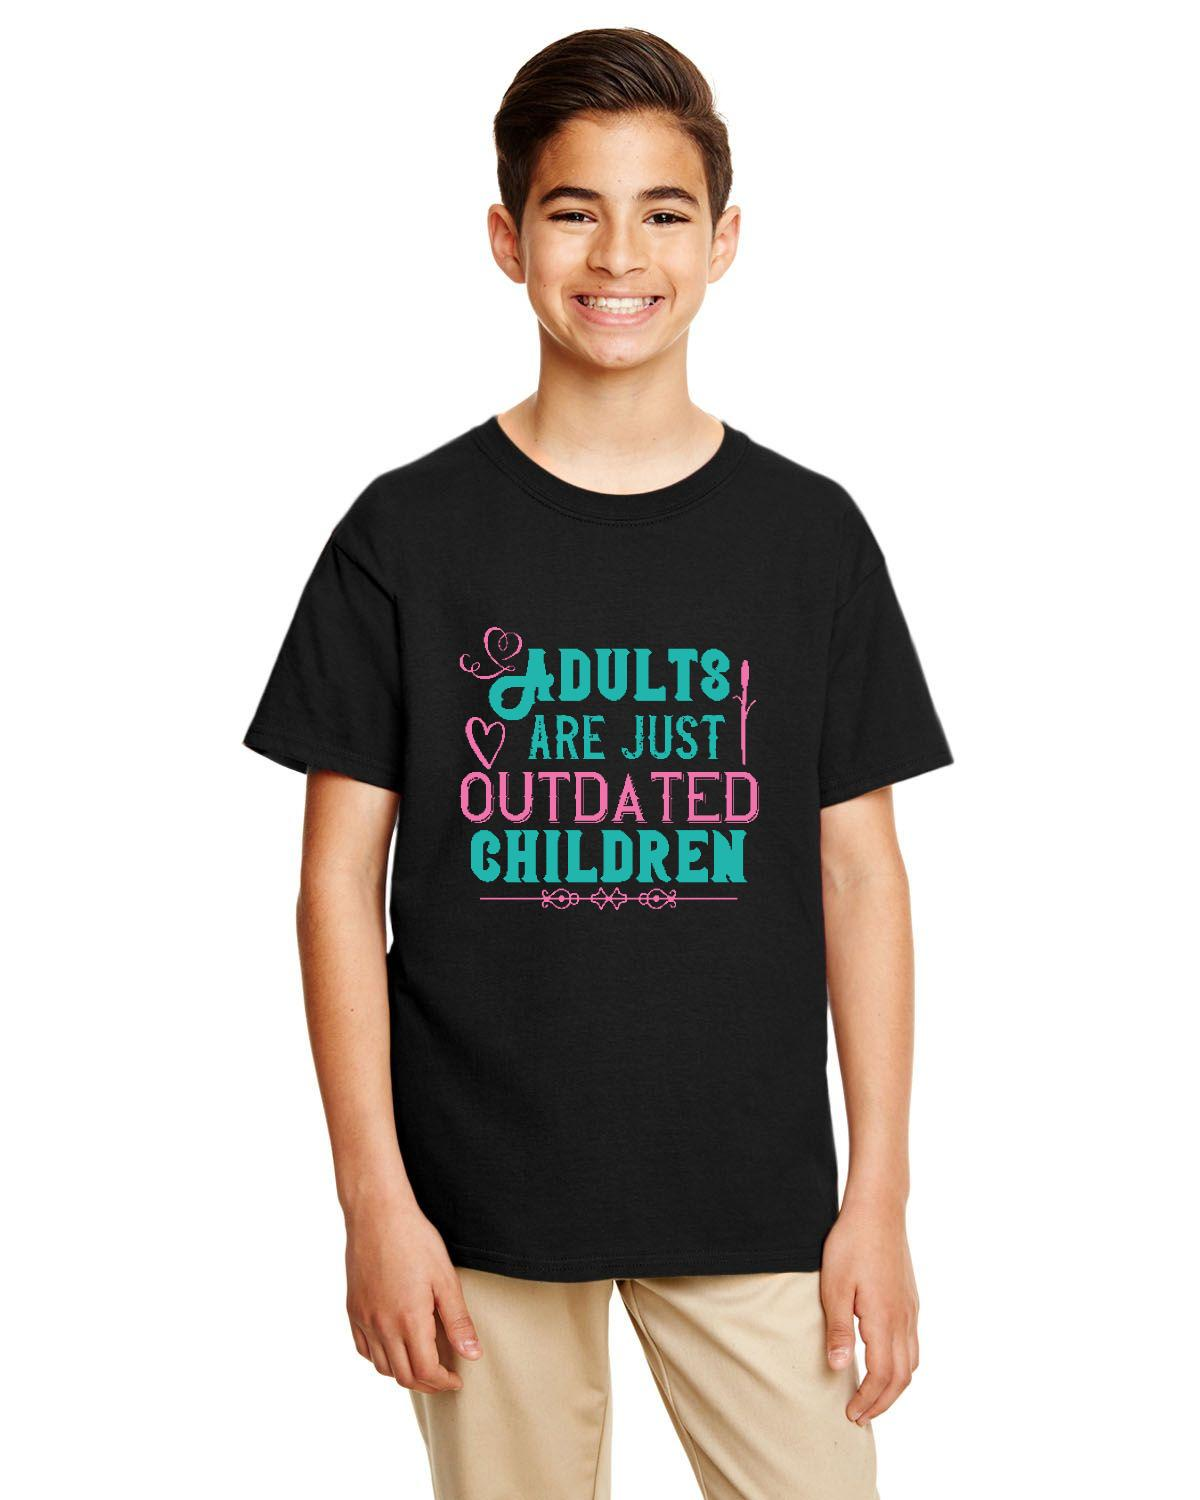 Adults are Out Dated Children Gildan Youth Softstyle – free shipping